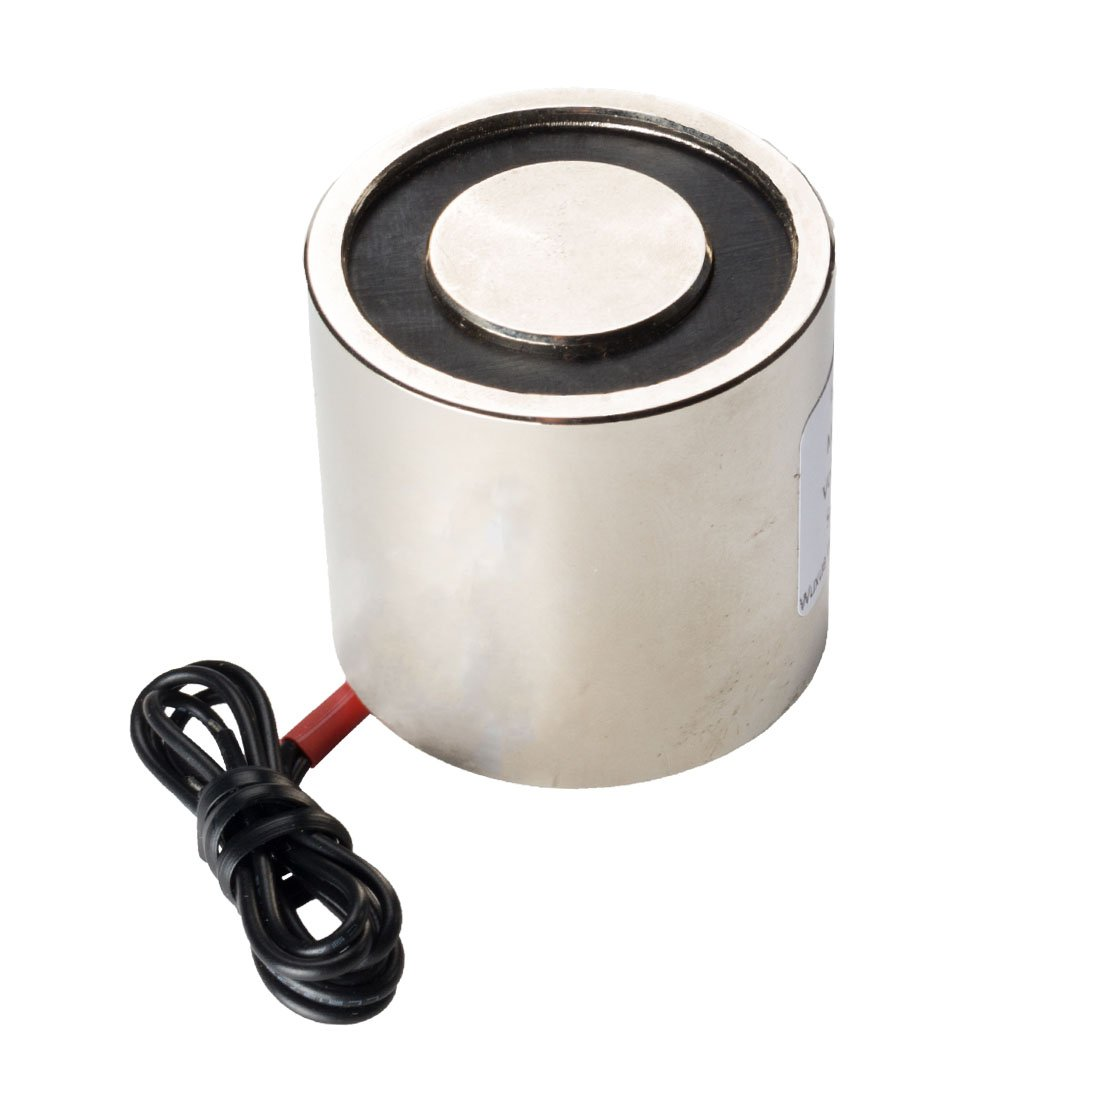 uxcell 24V 50N Electric Lifting Magnet Electromagnet Solenoid Lift Holding